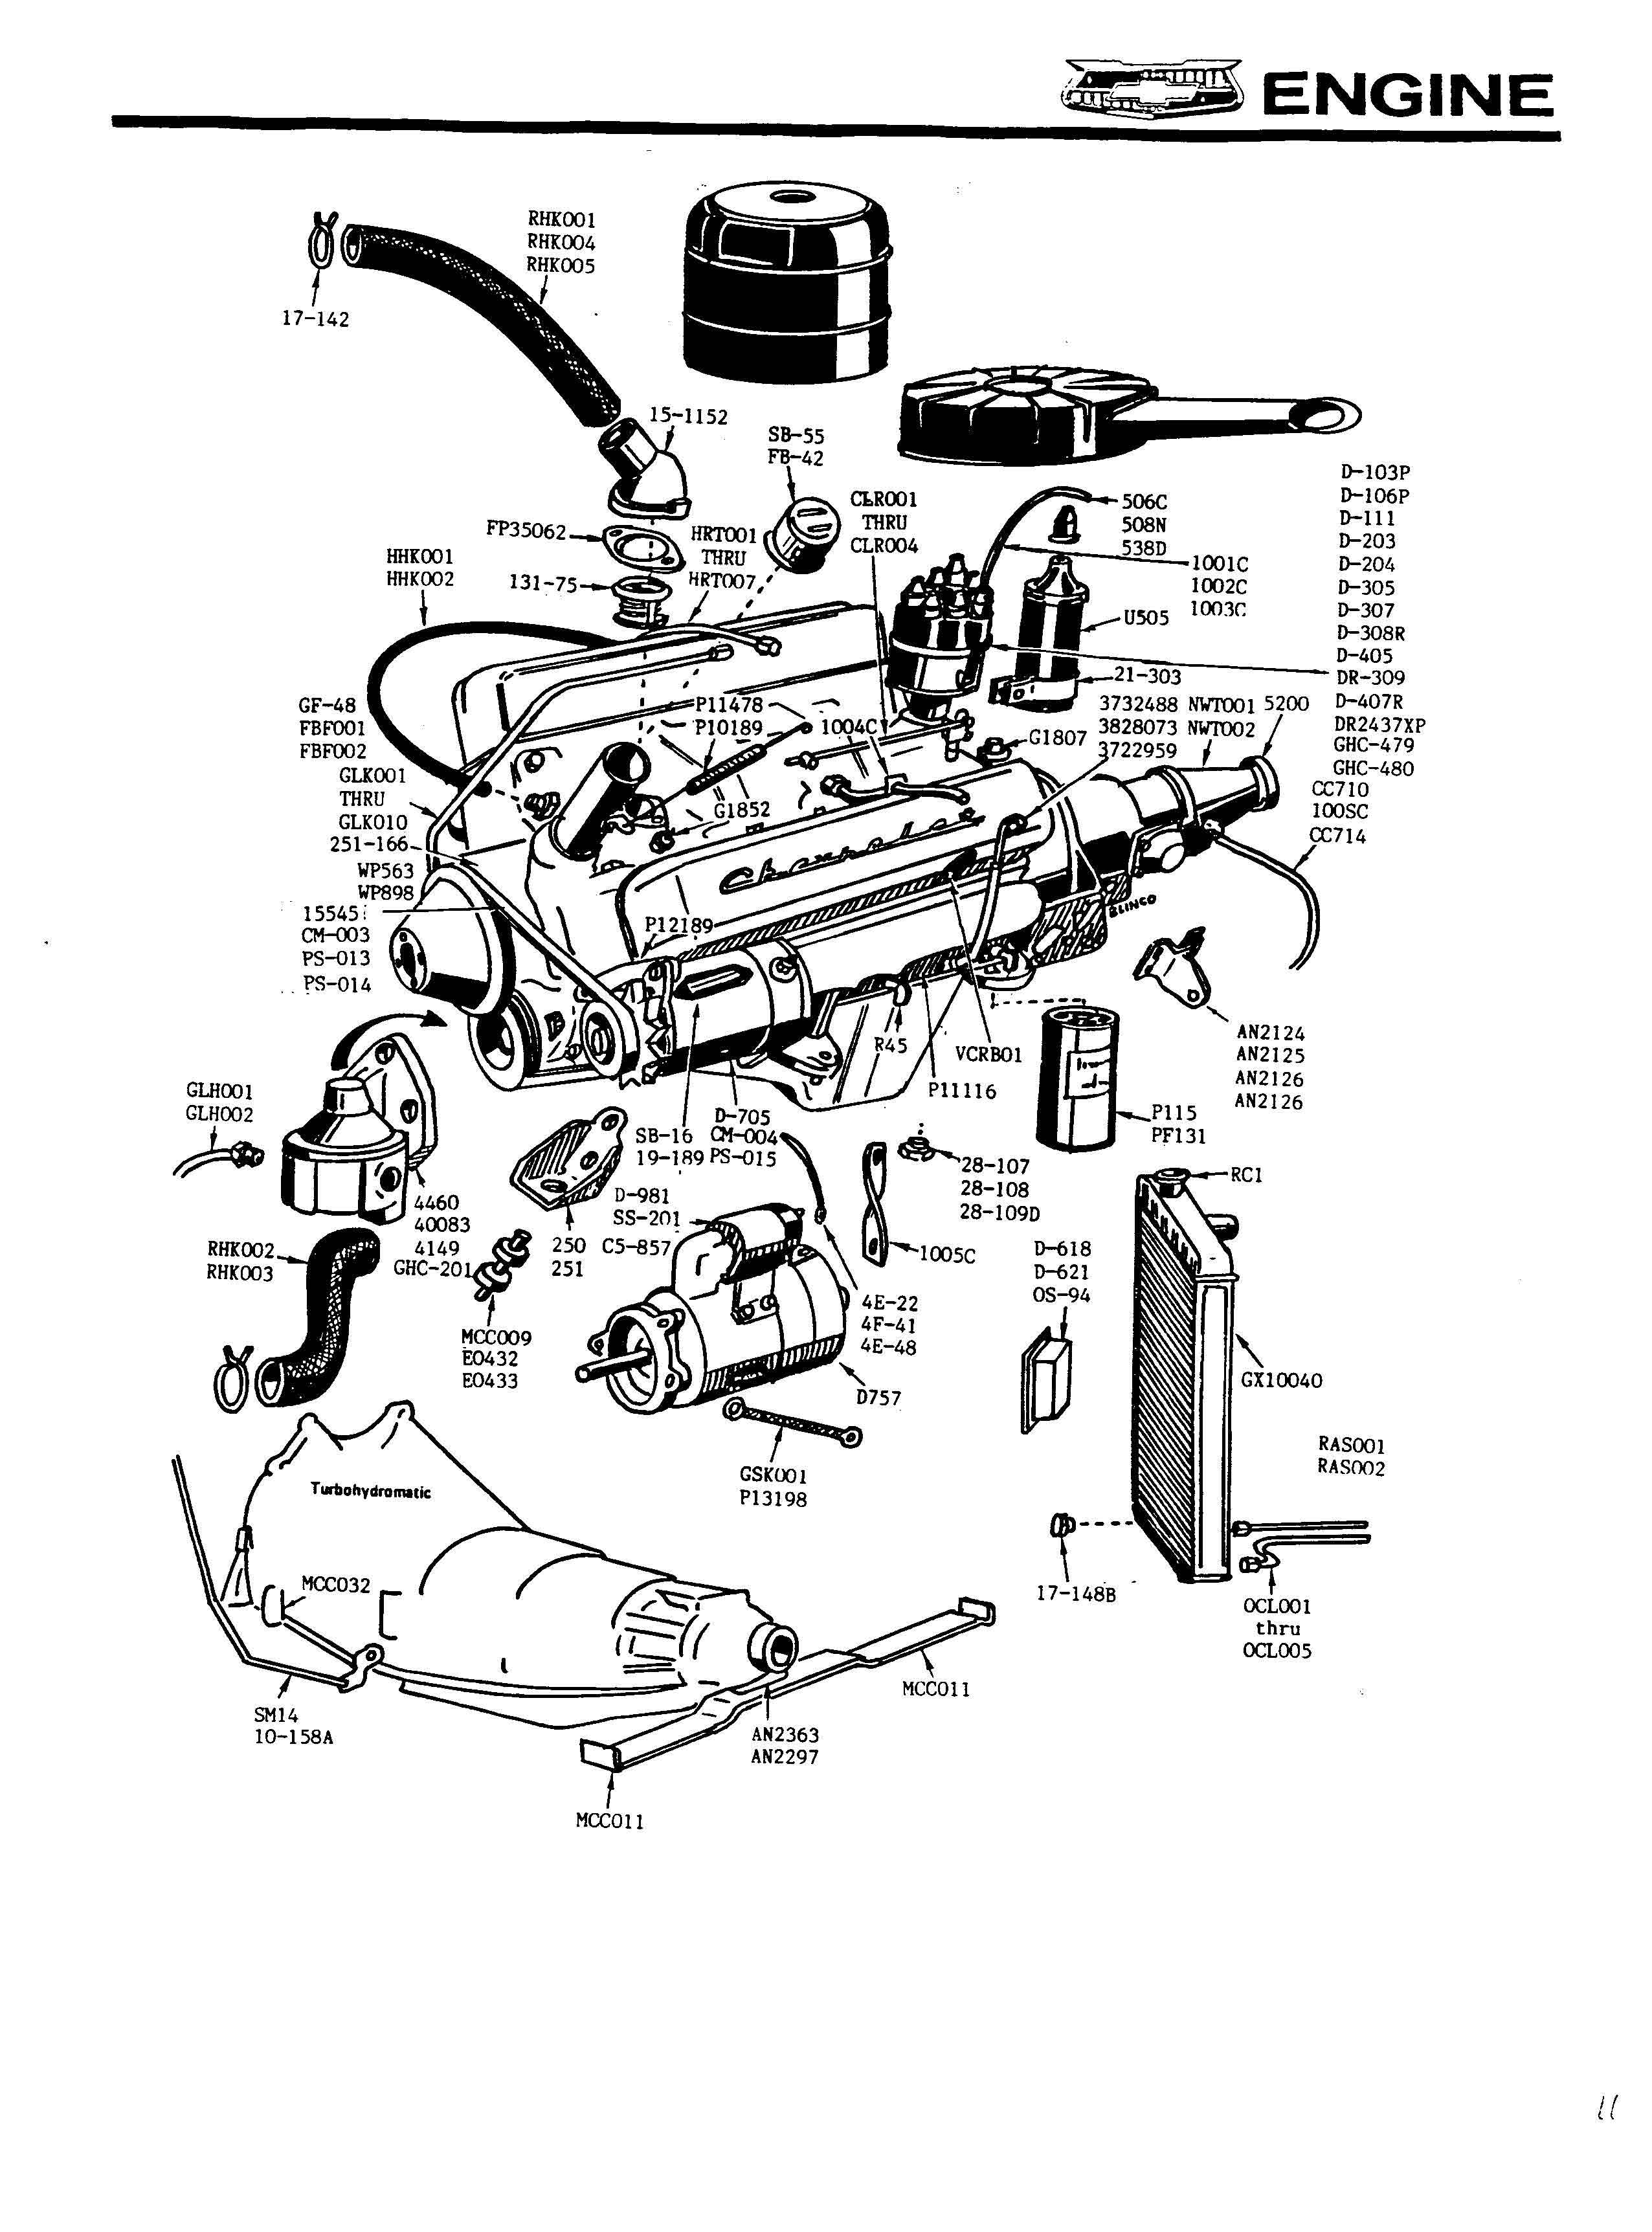 Chevy Engine Blueprints, Chevy, Free Engine Image For User